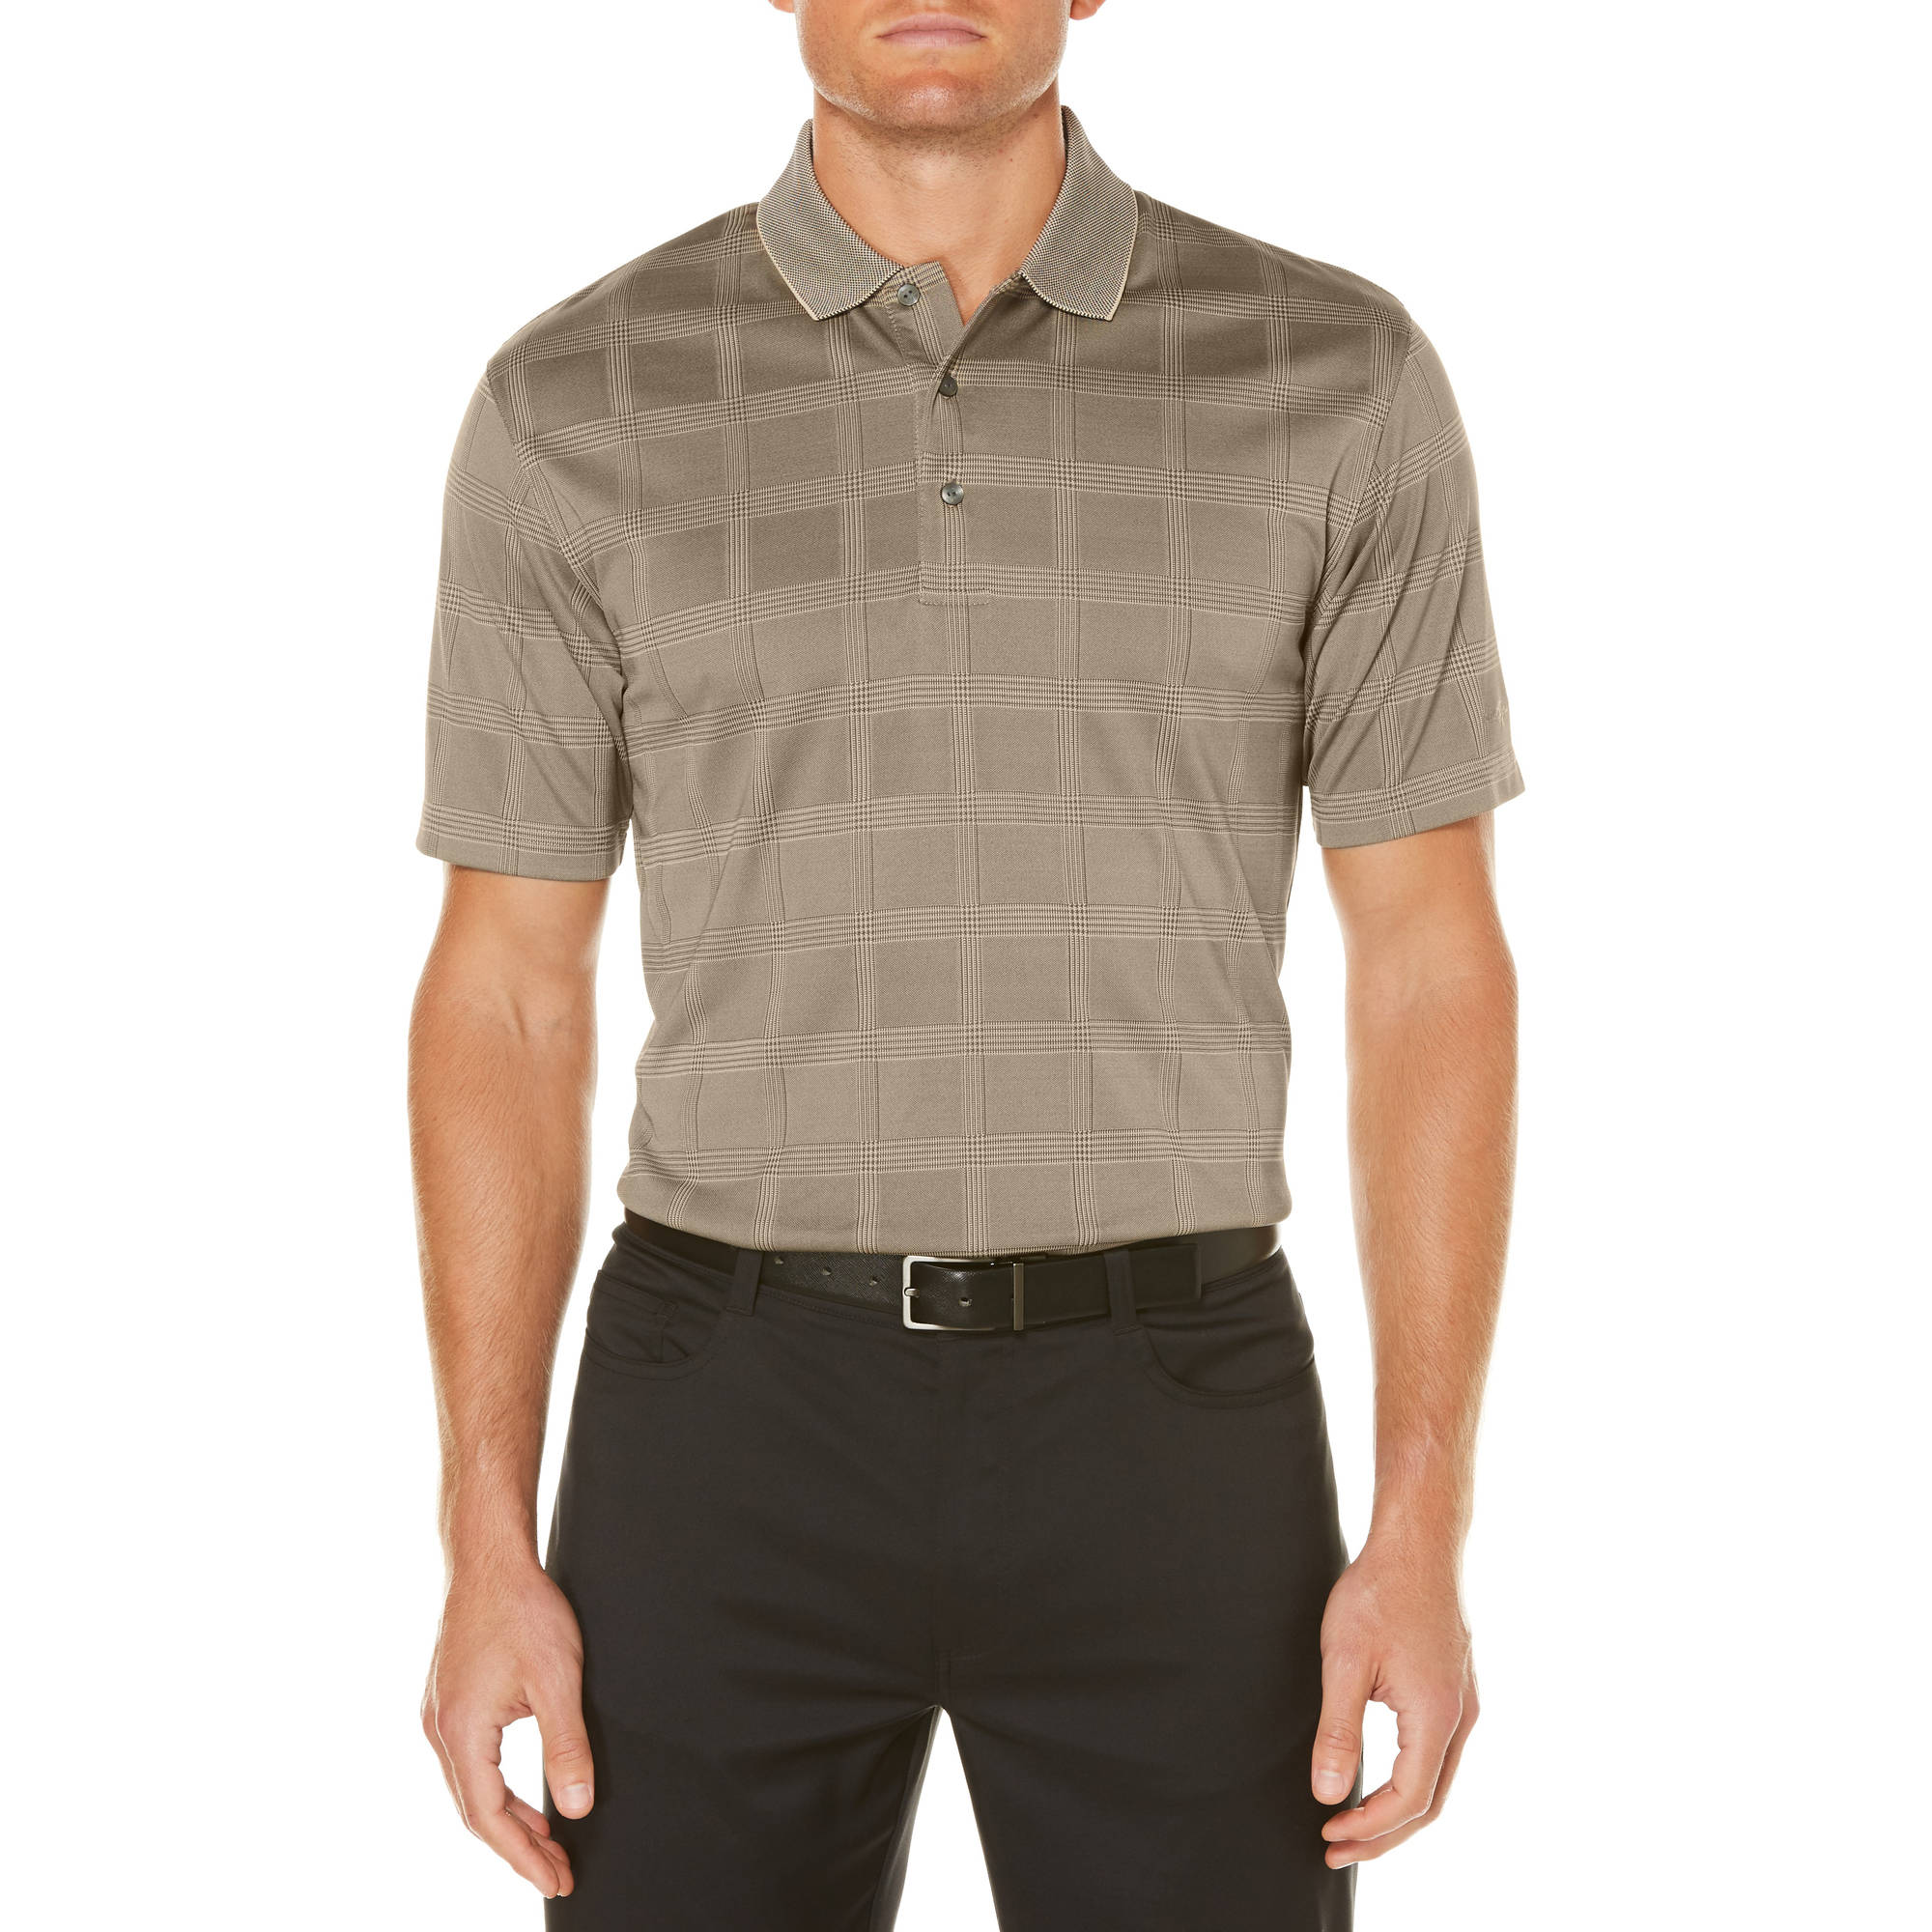 Men's Performance Short Sleeve Textured Polo Shirt, up to 5XL